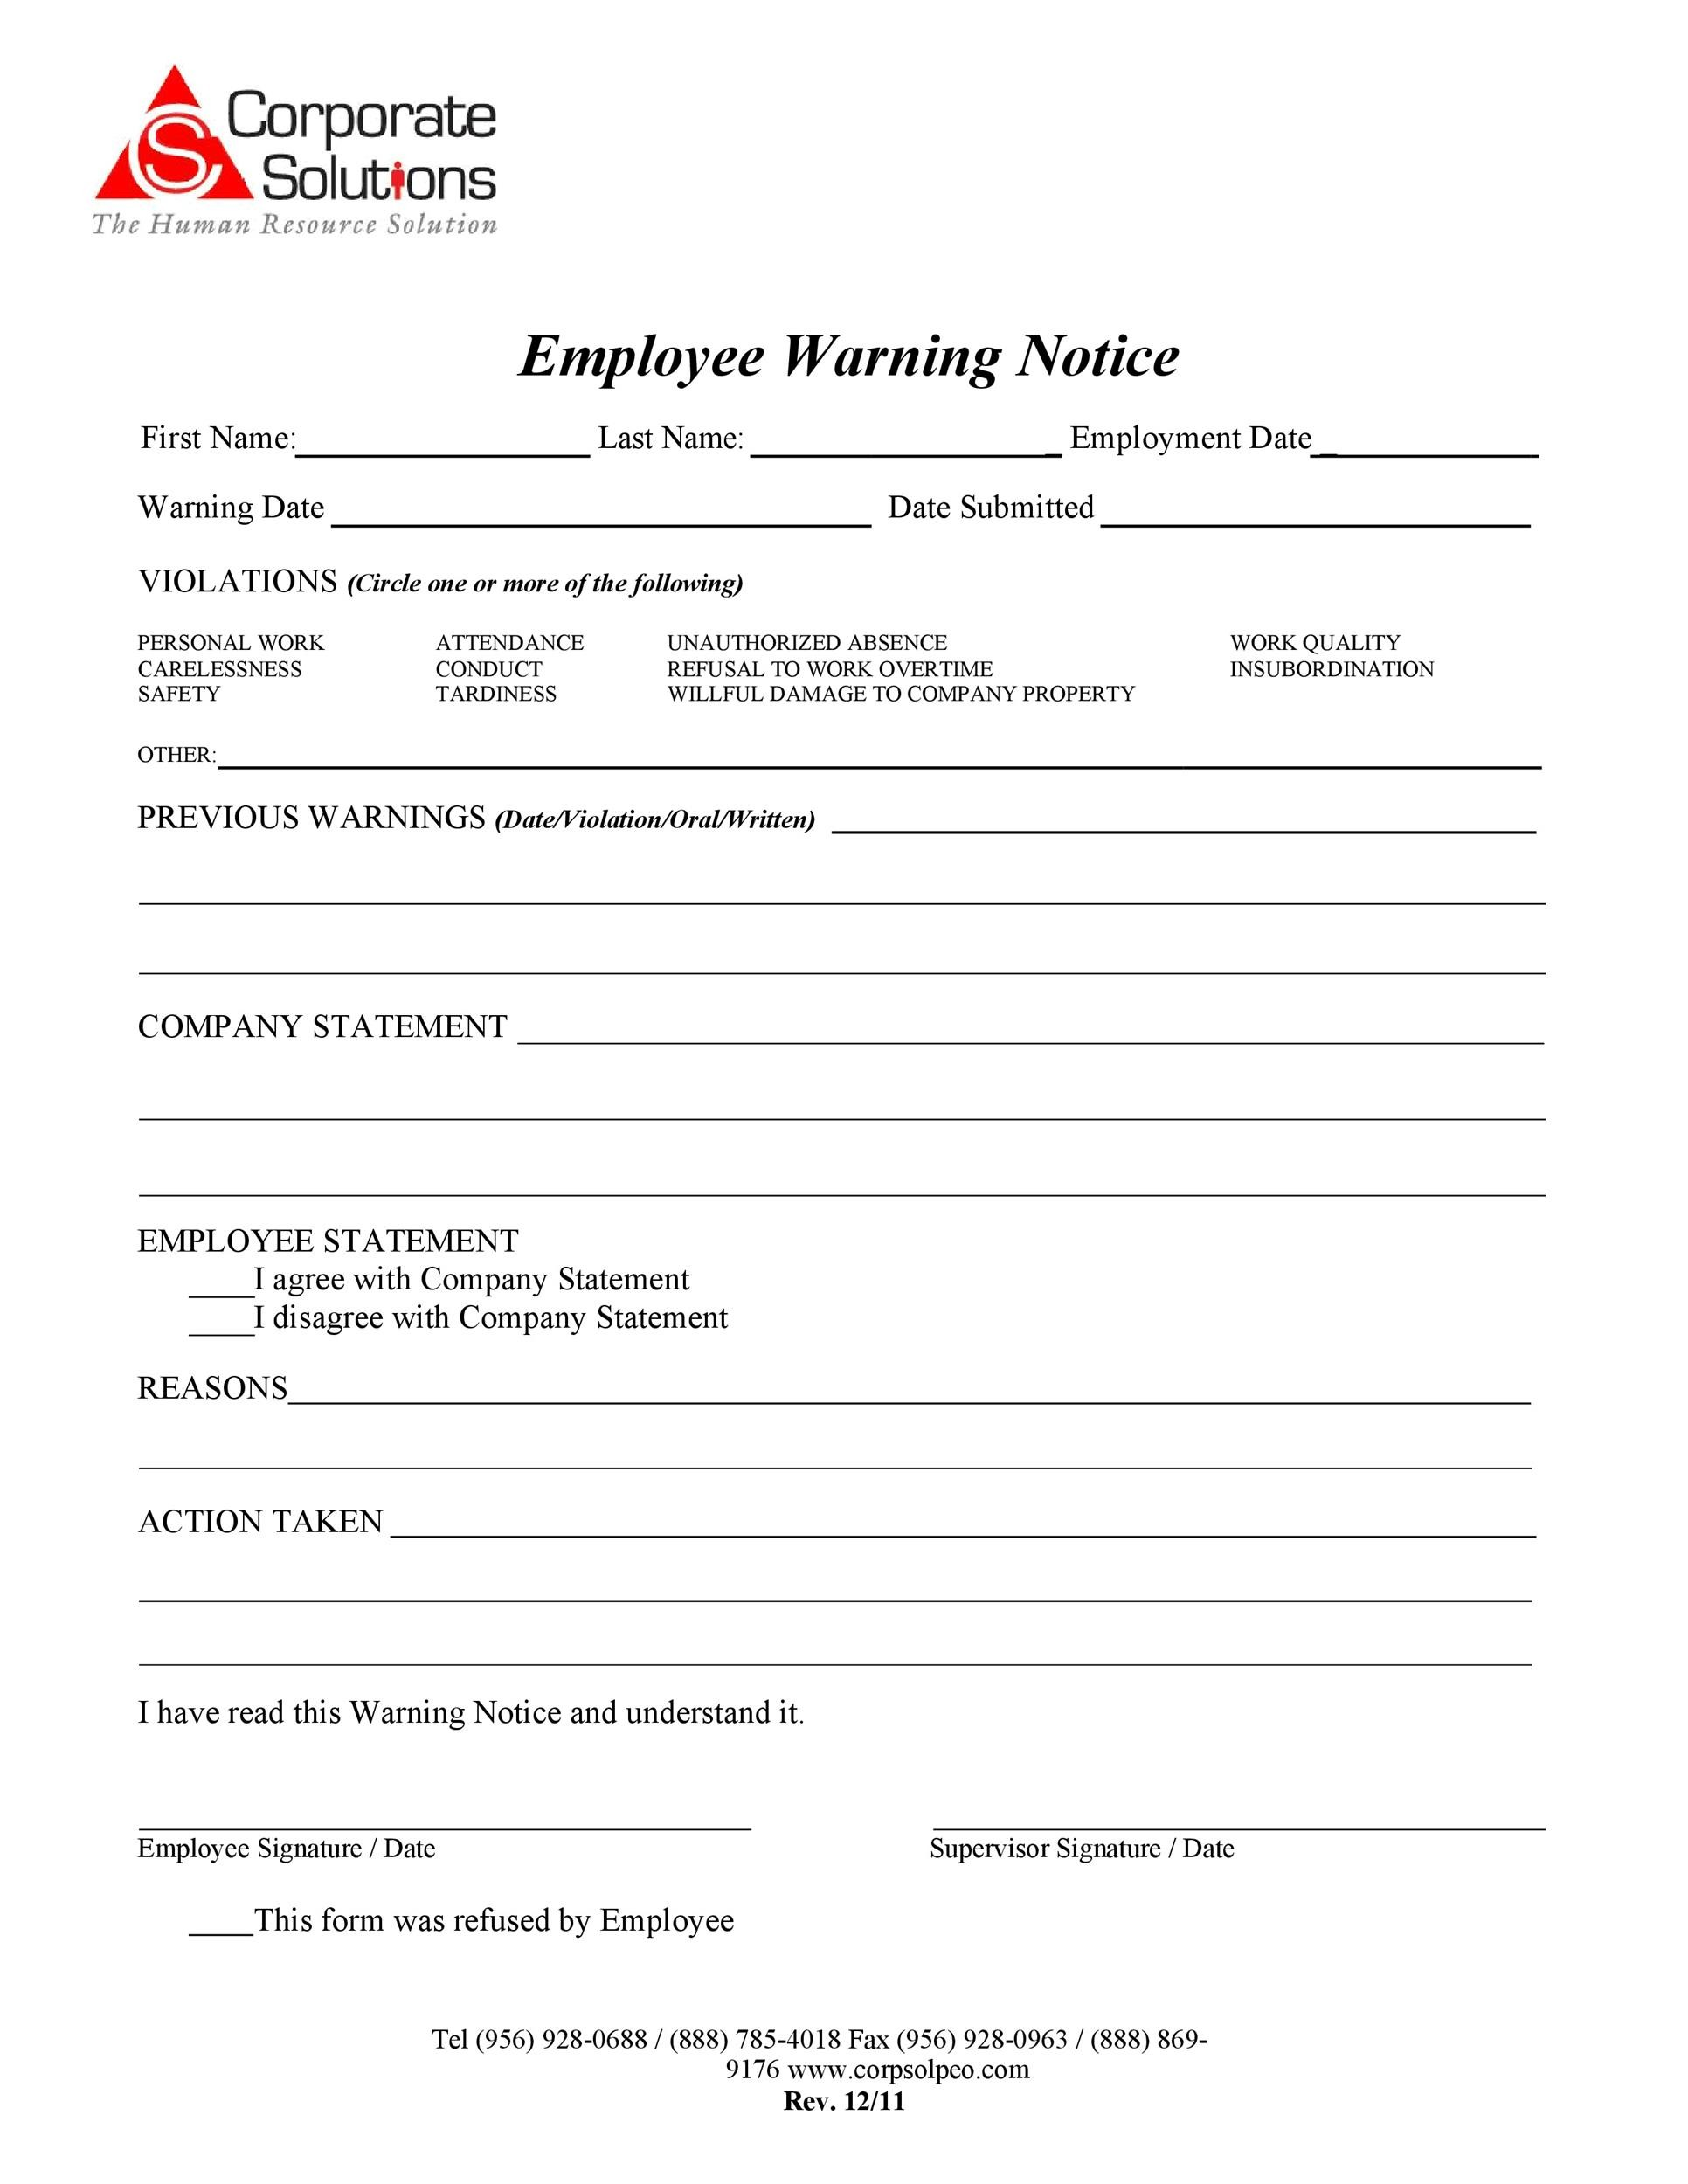 Employee warning notice download 56 free templates forms printable employee warning notice 16 altavistaventures Image collections